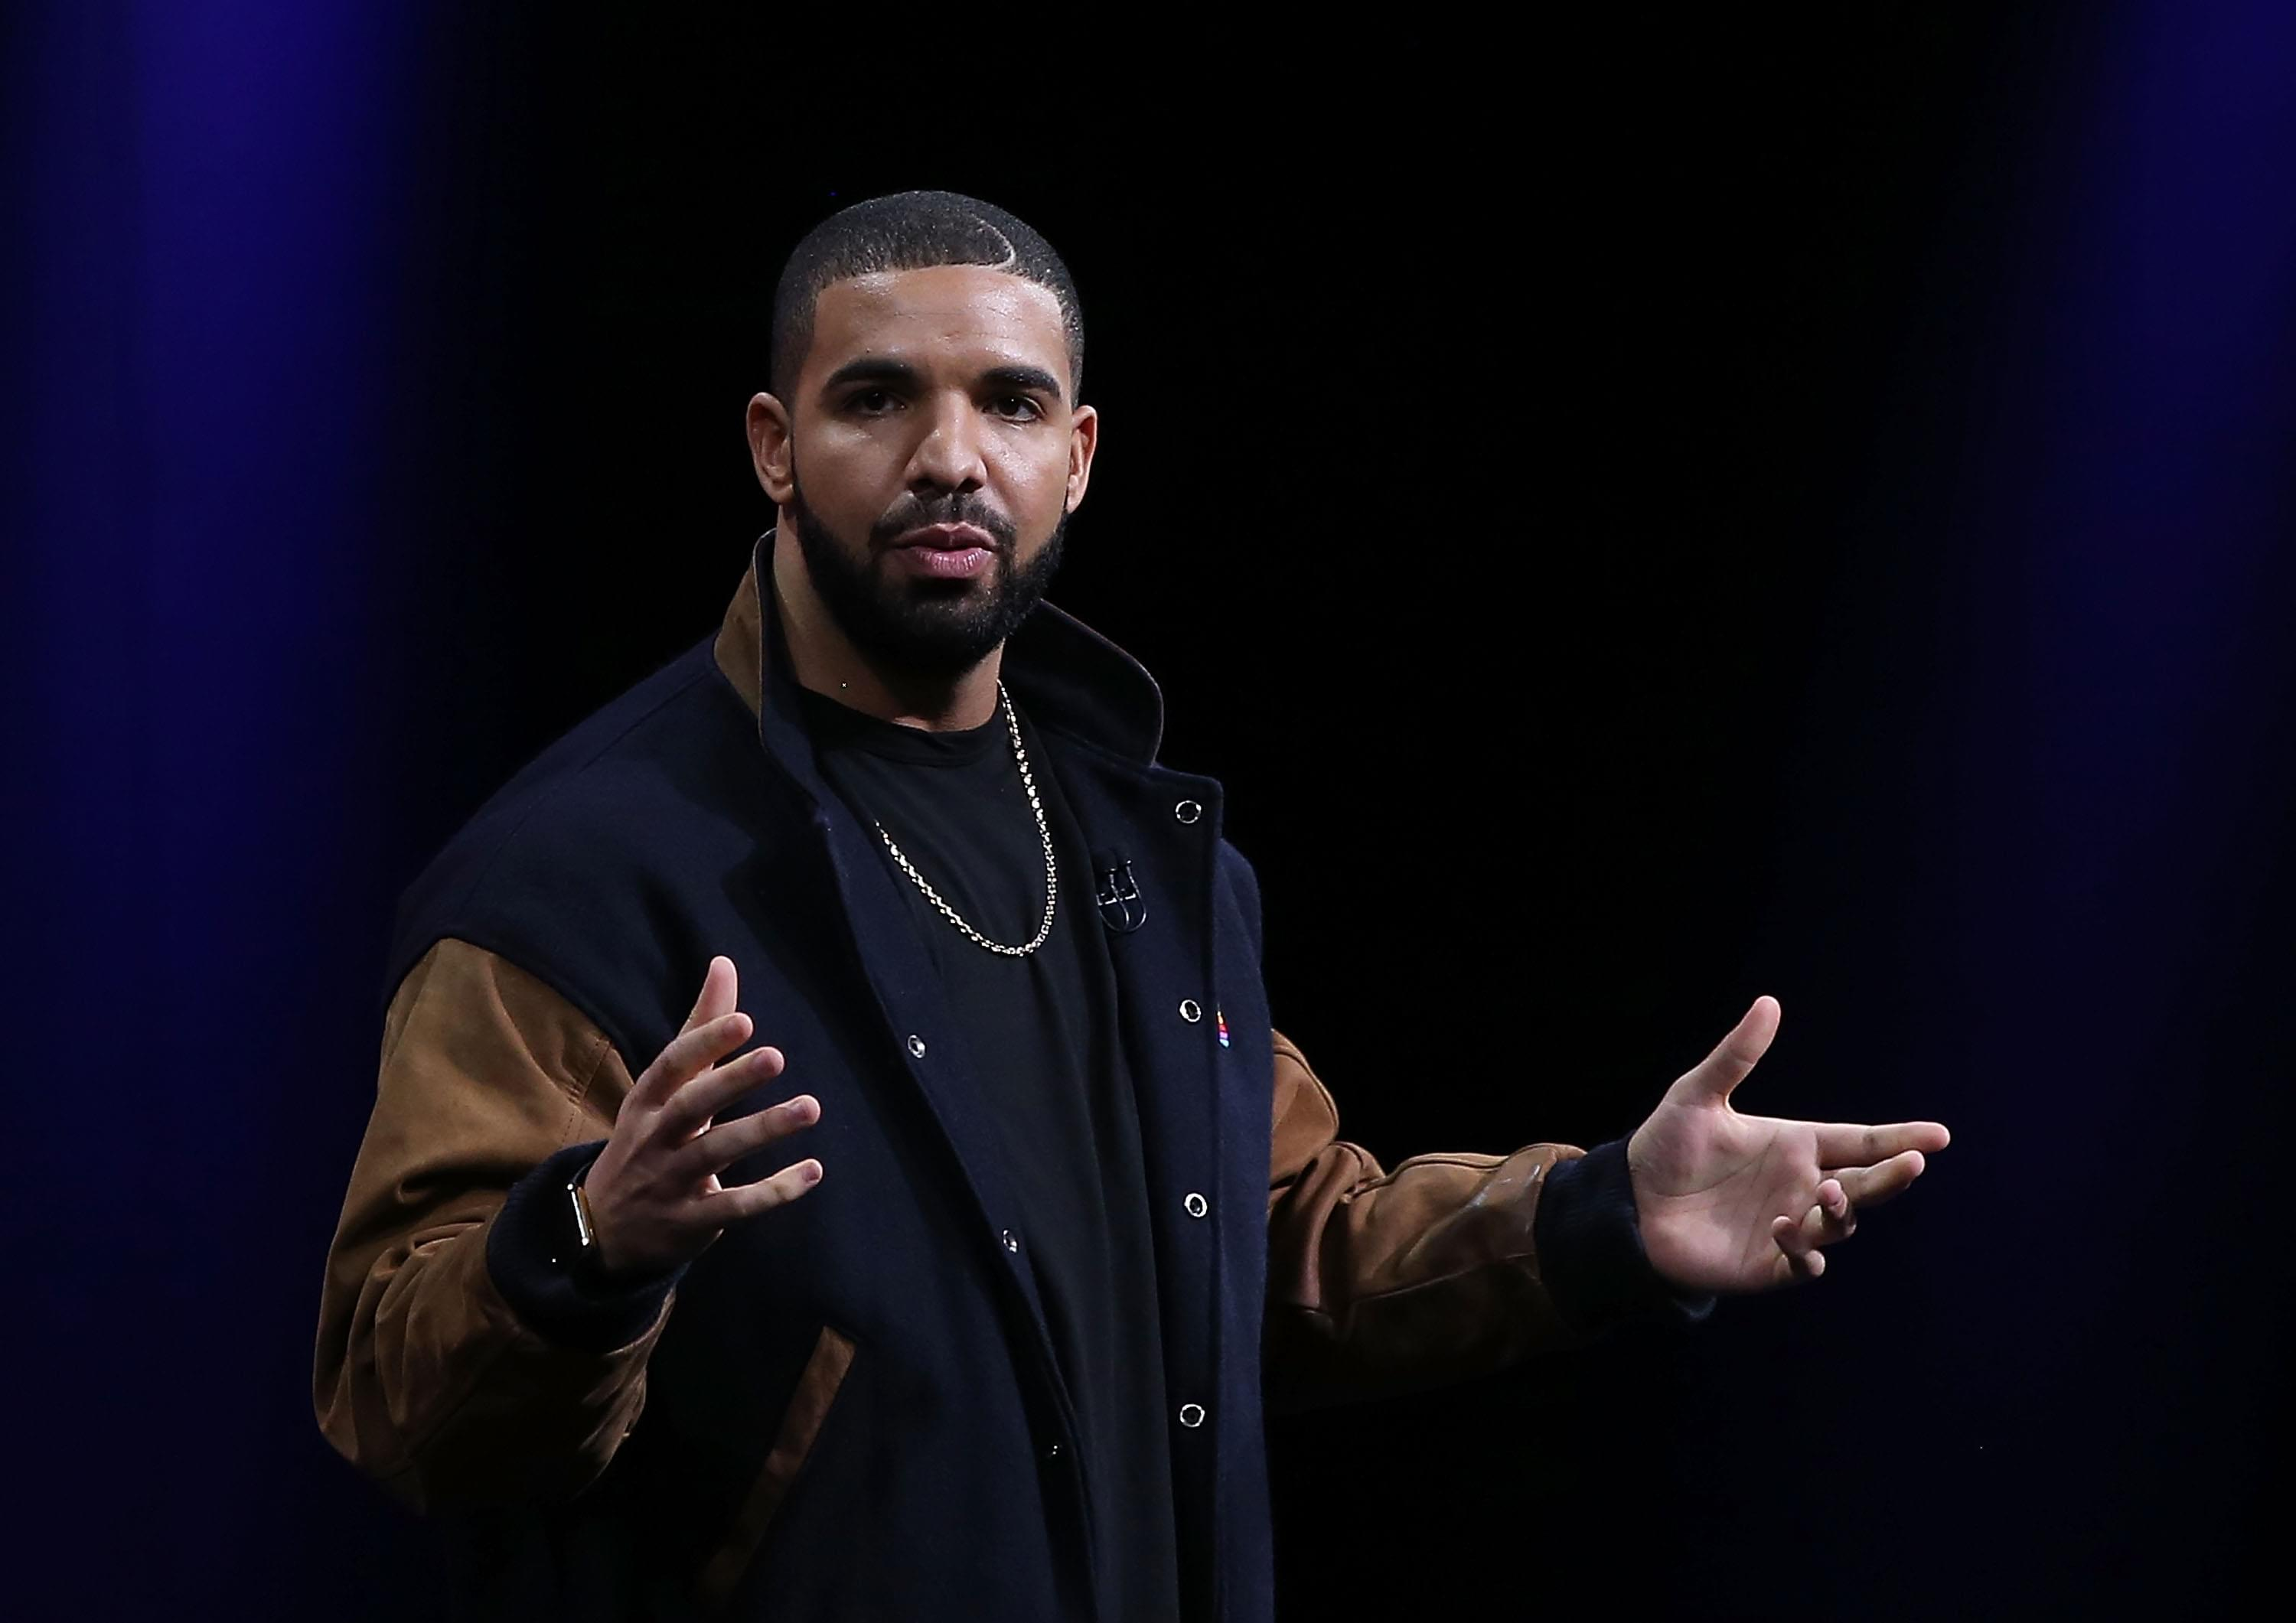 Youtube Hackers Target Drake and Cardi B Videos